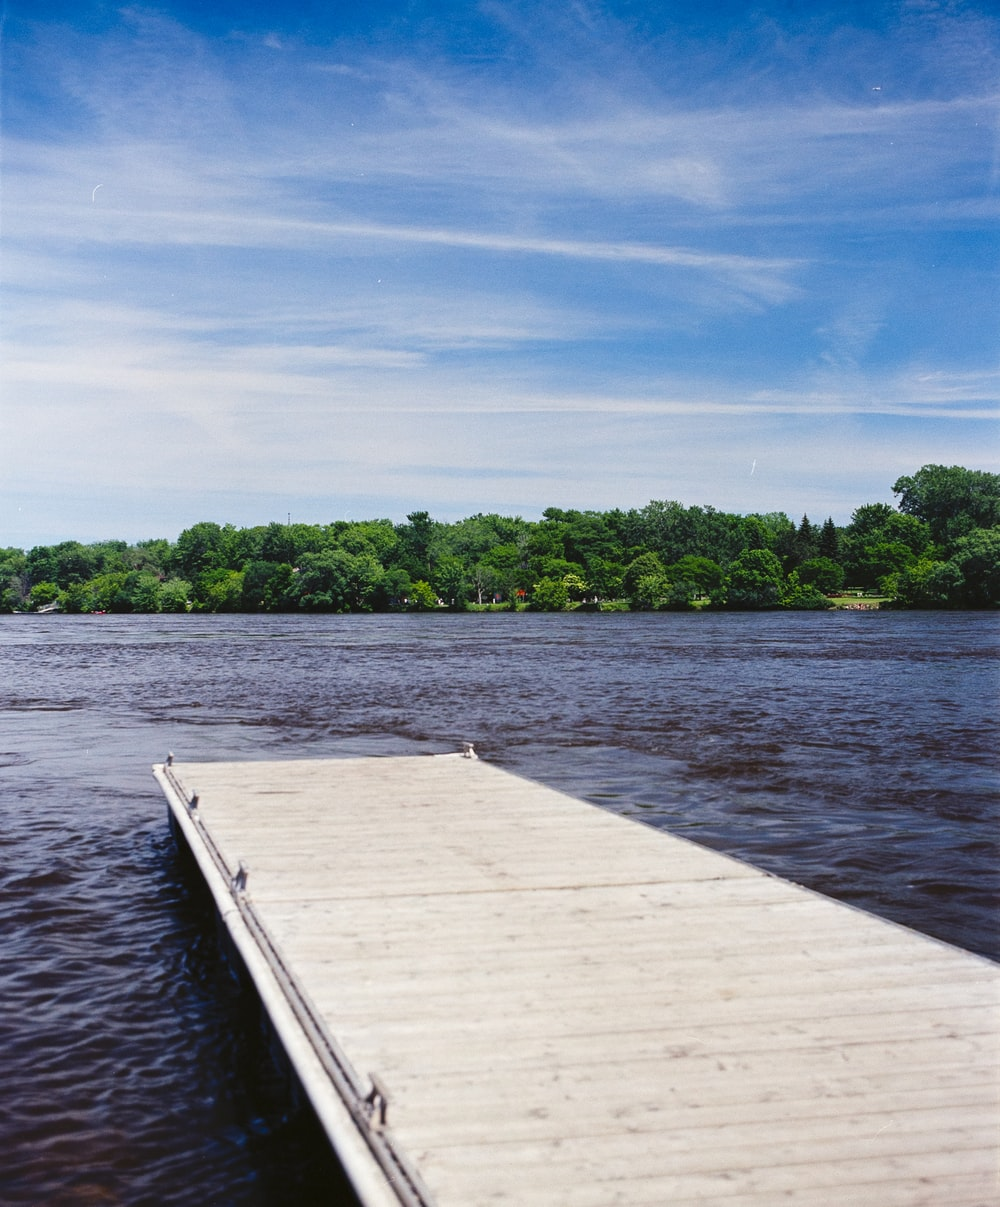 dock during daytime